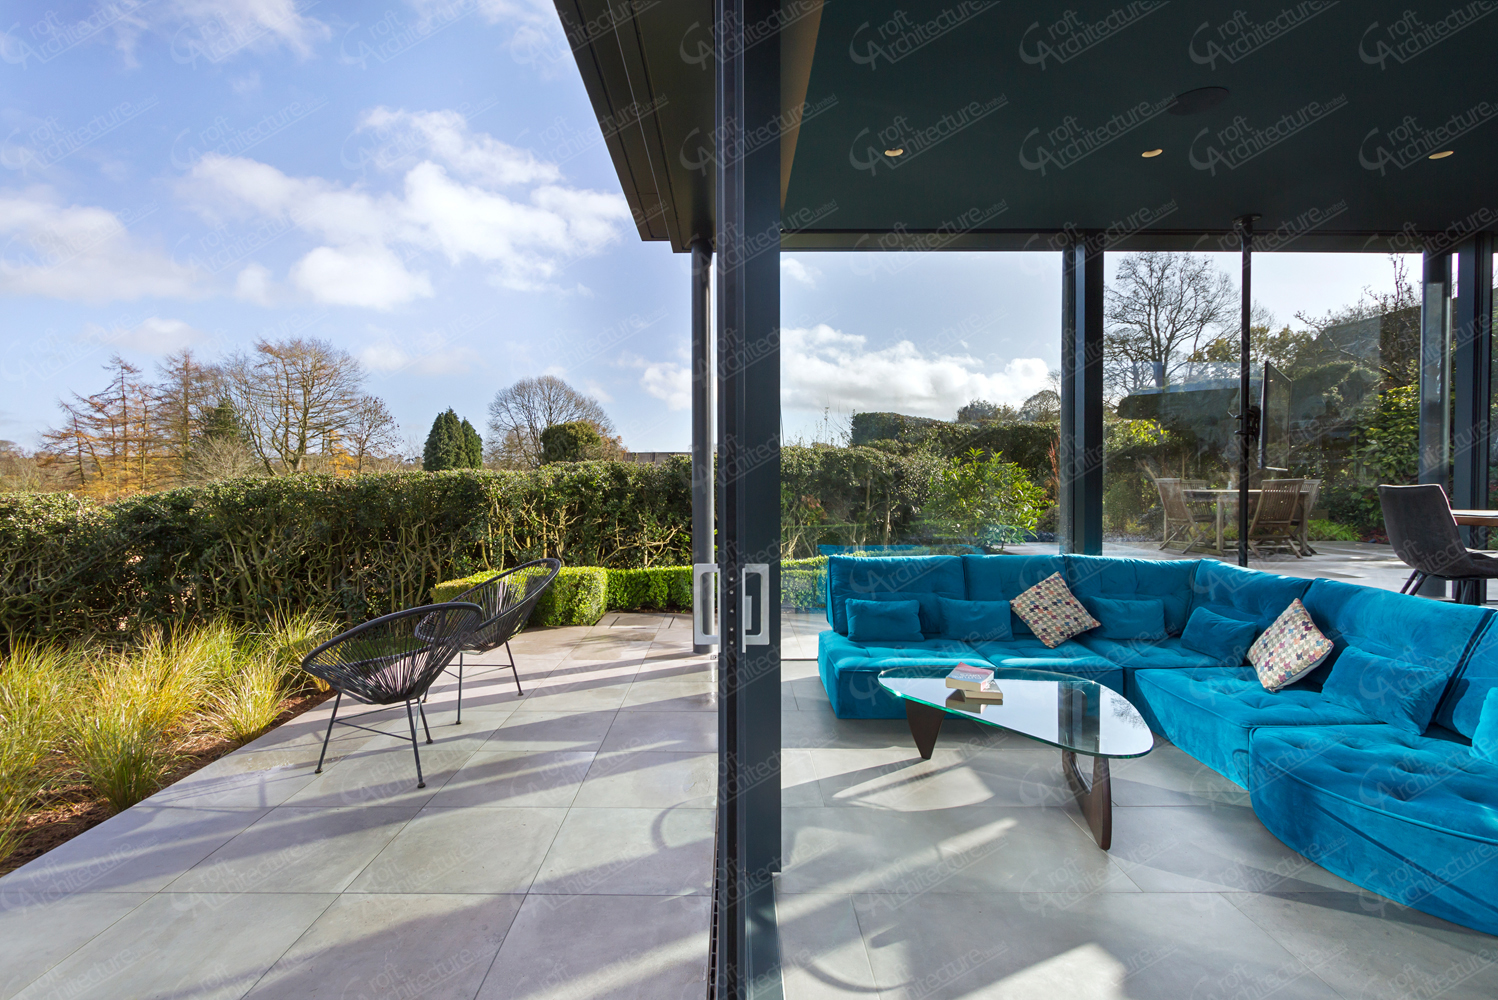 Croft Architecture Inside Outside Living Space